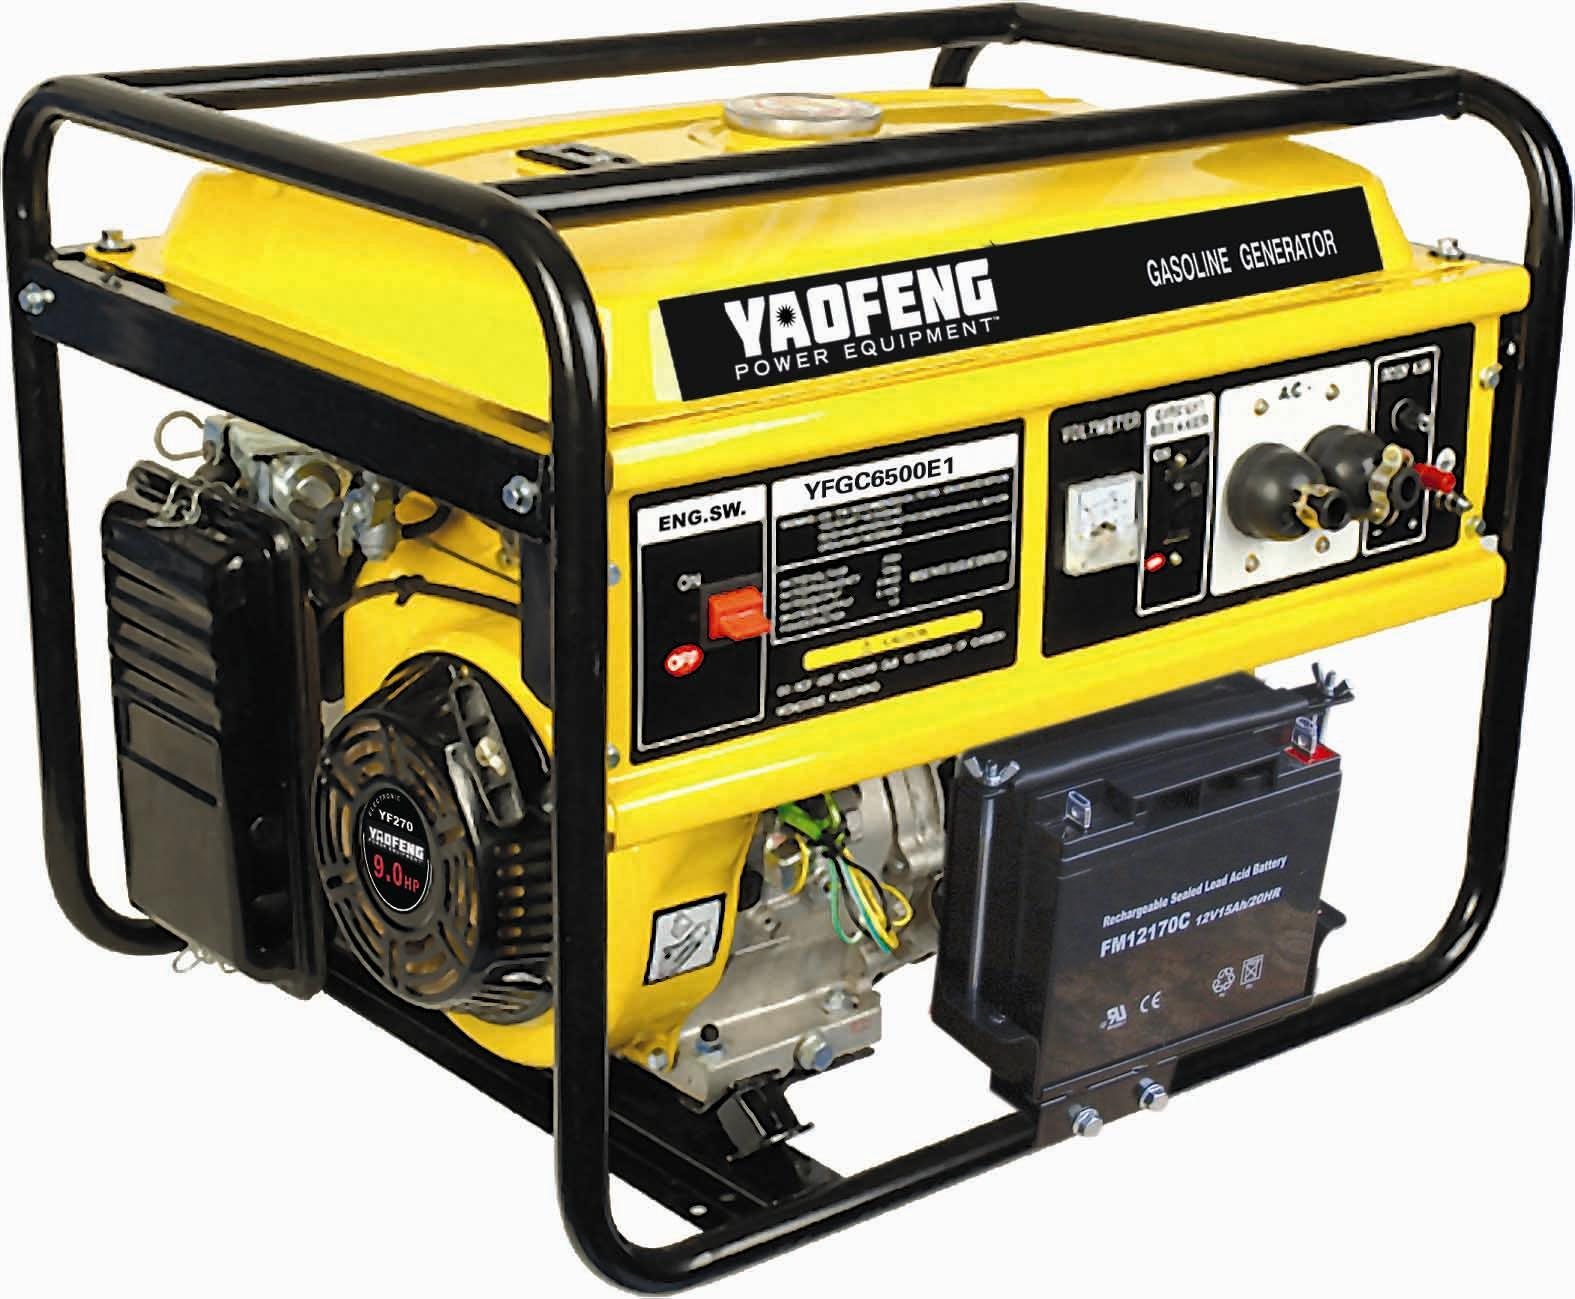 5000 Watts Portable Power Gasoline Generator with EPA, Carb, CE, Soncap Certificate (YFGC6500E1)